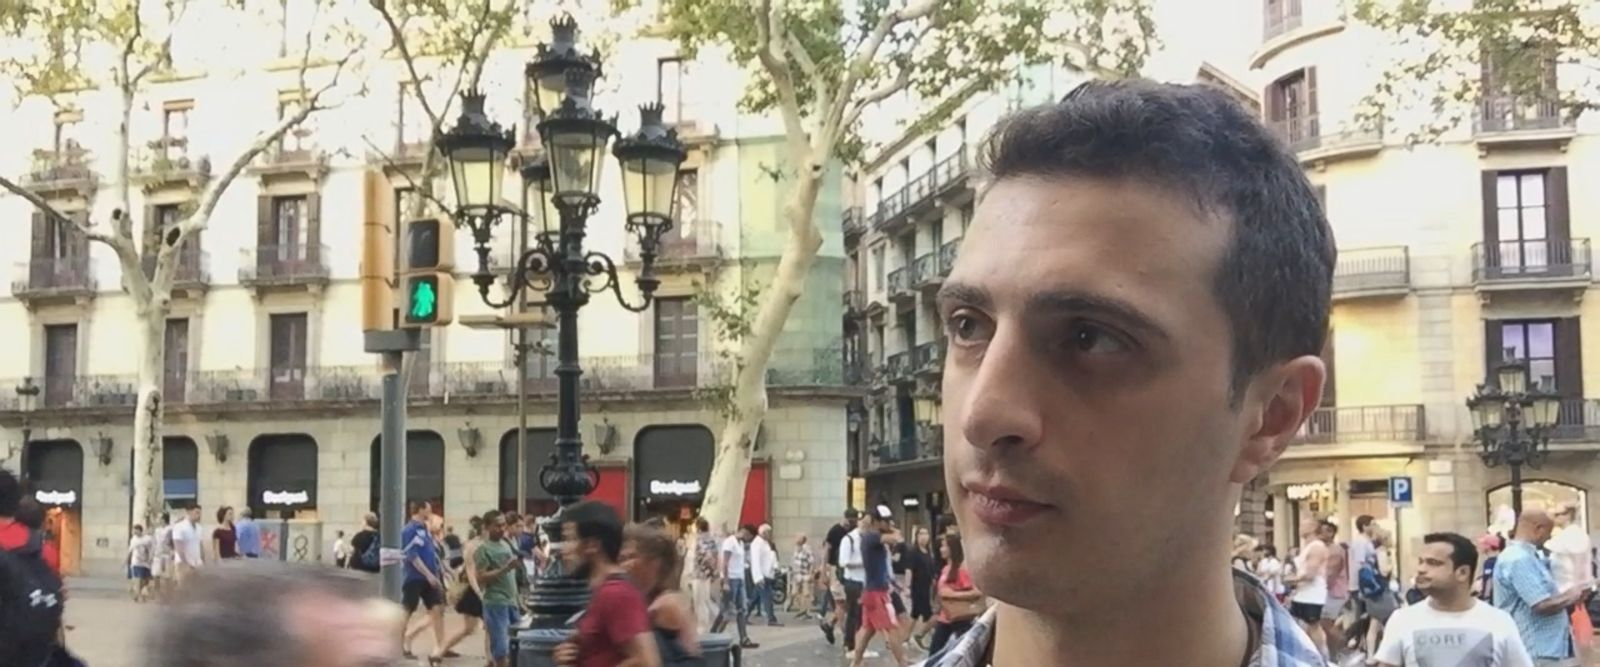 VIDEO: Barcelona residents stand in solidarity with victims of deadly vehicle attack